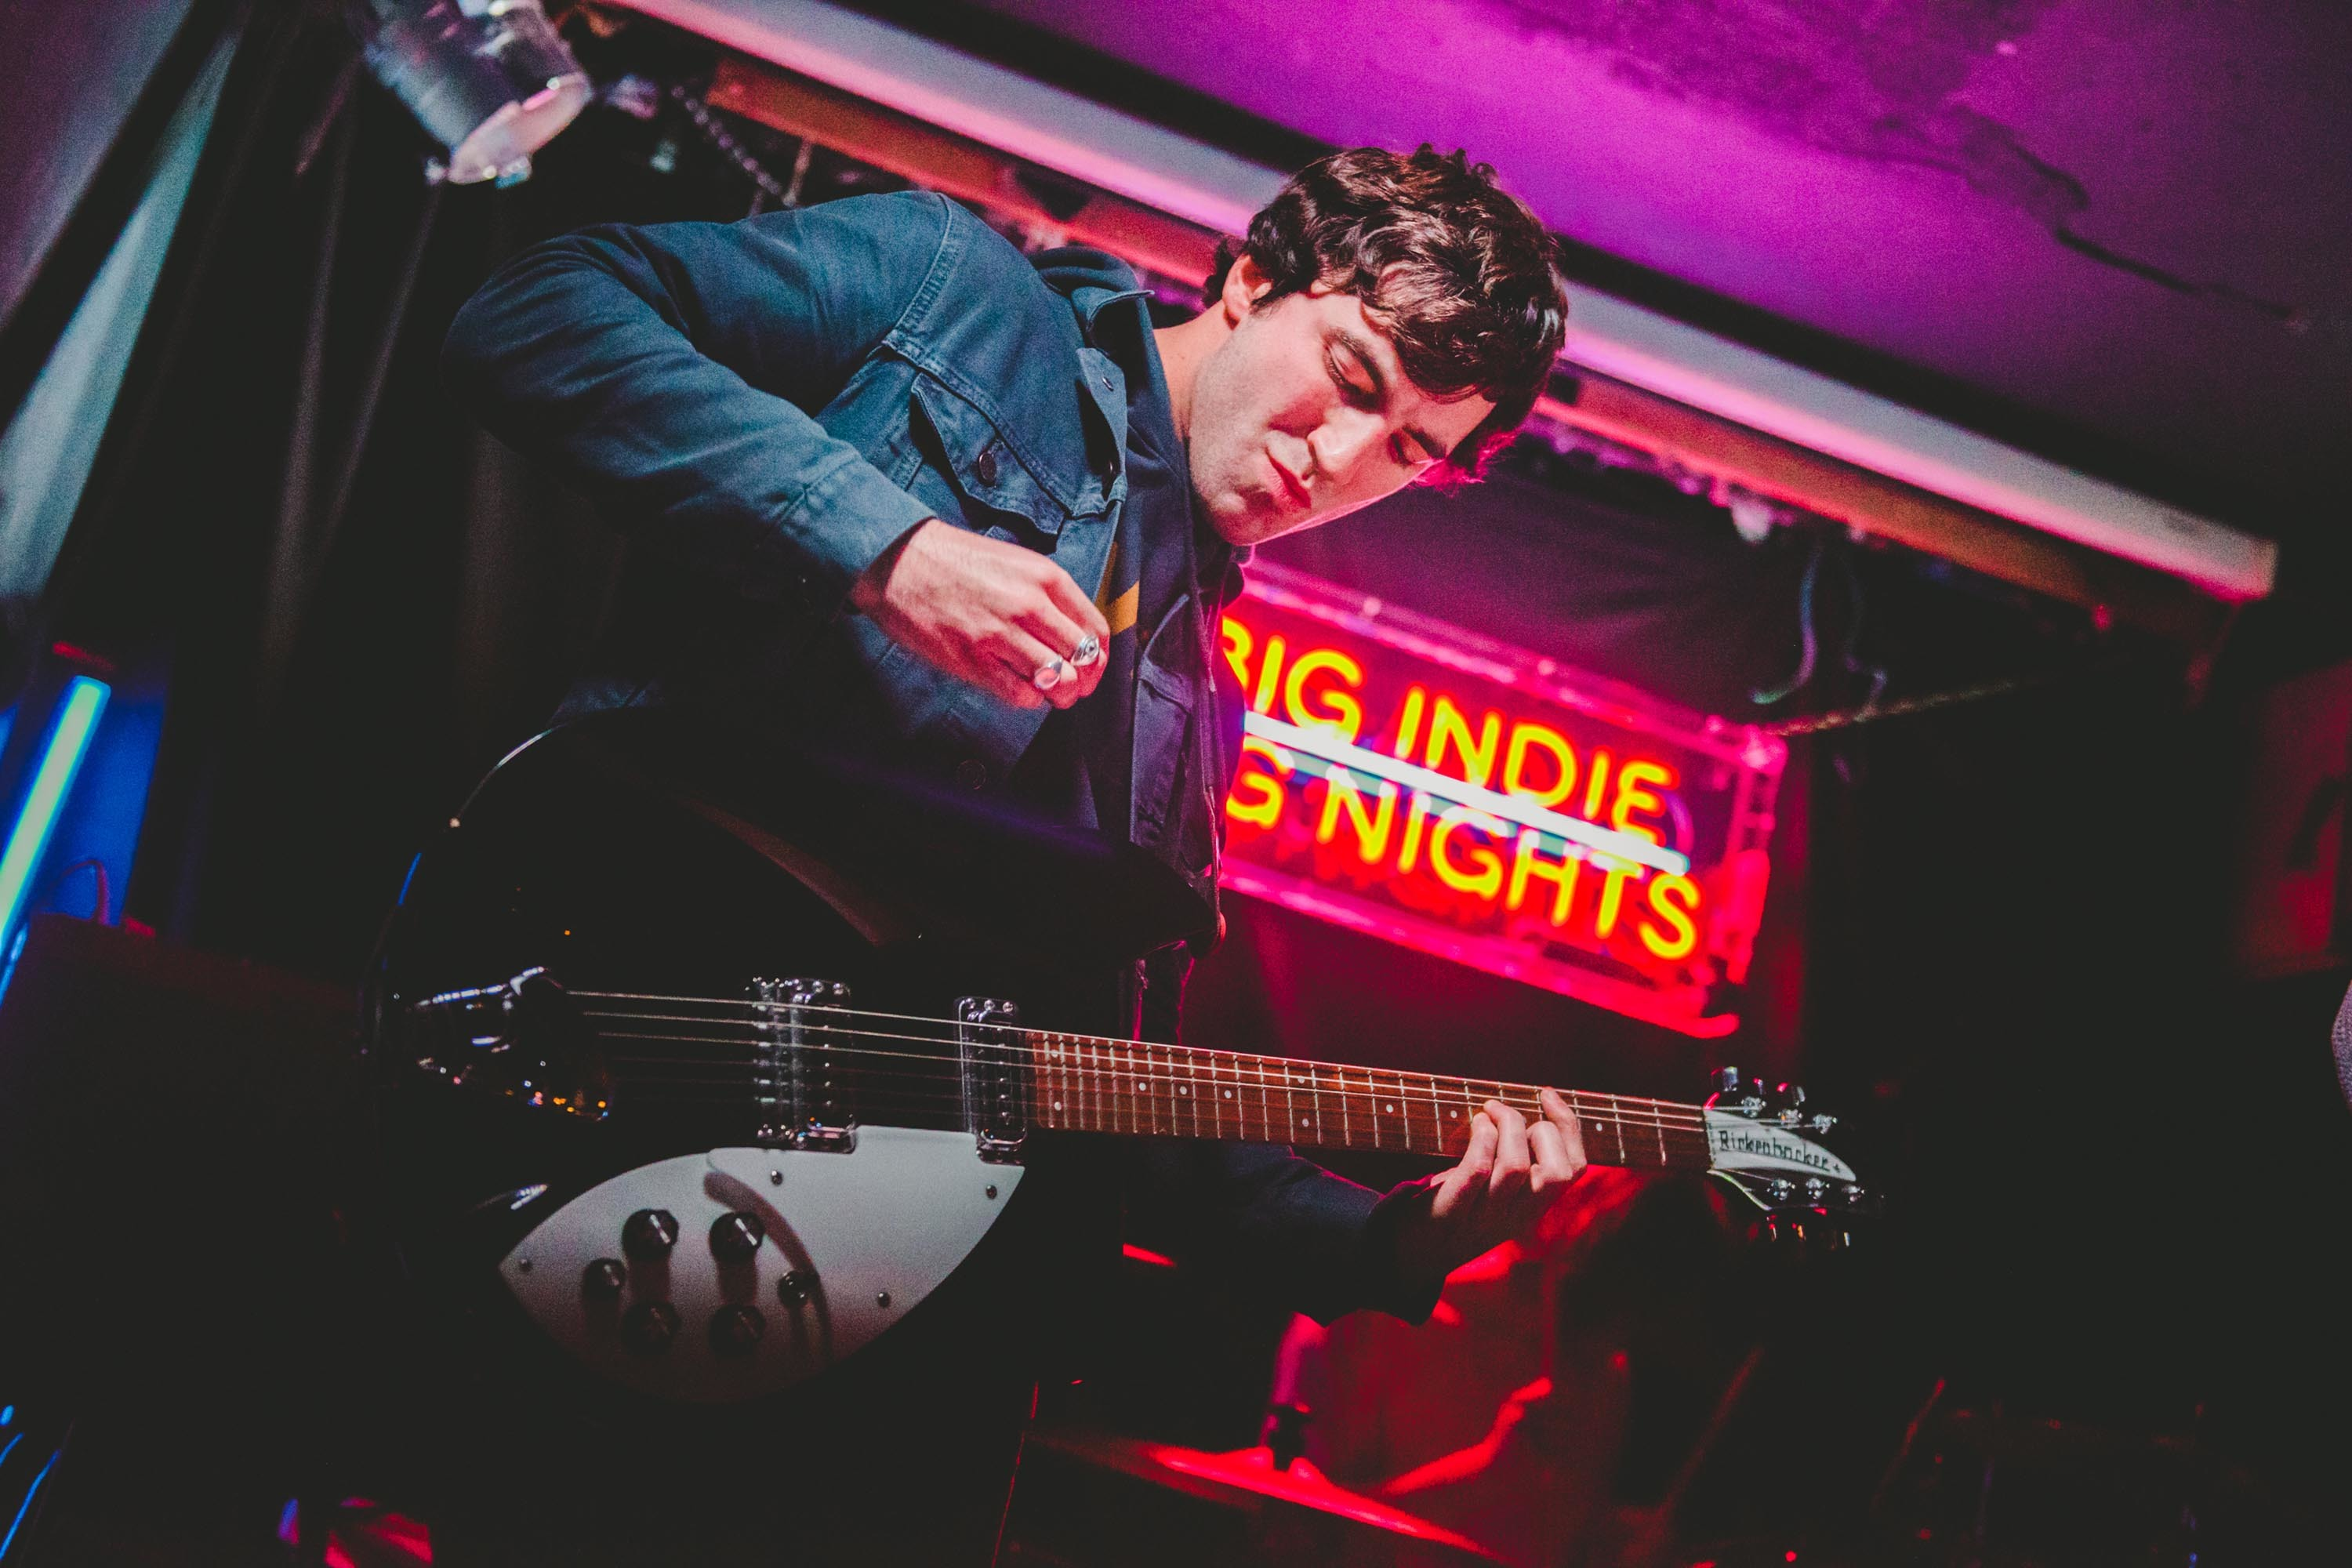 Big Indie Big Nights hits The Old Blue Last for festive celebrations